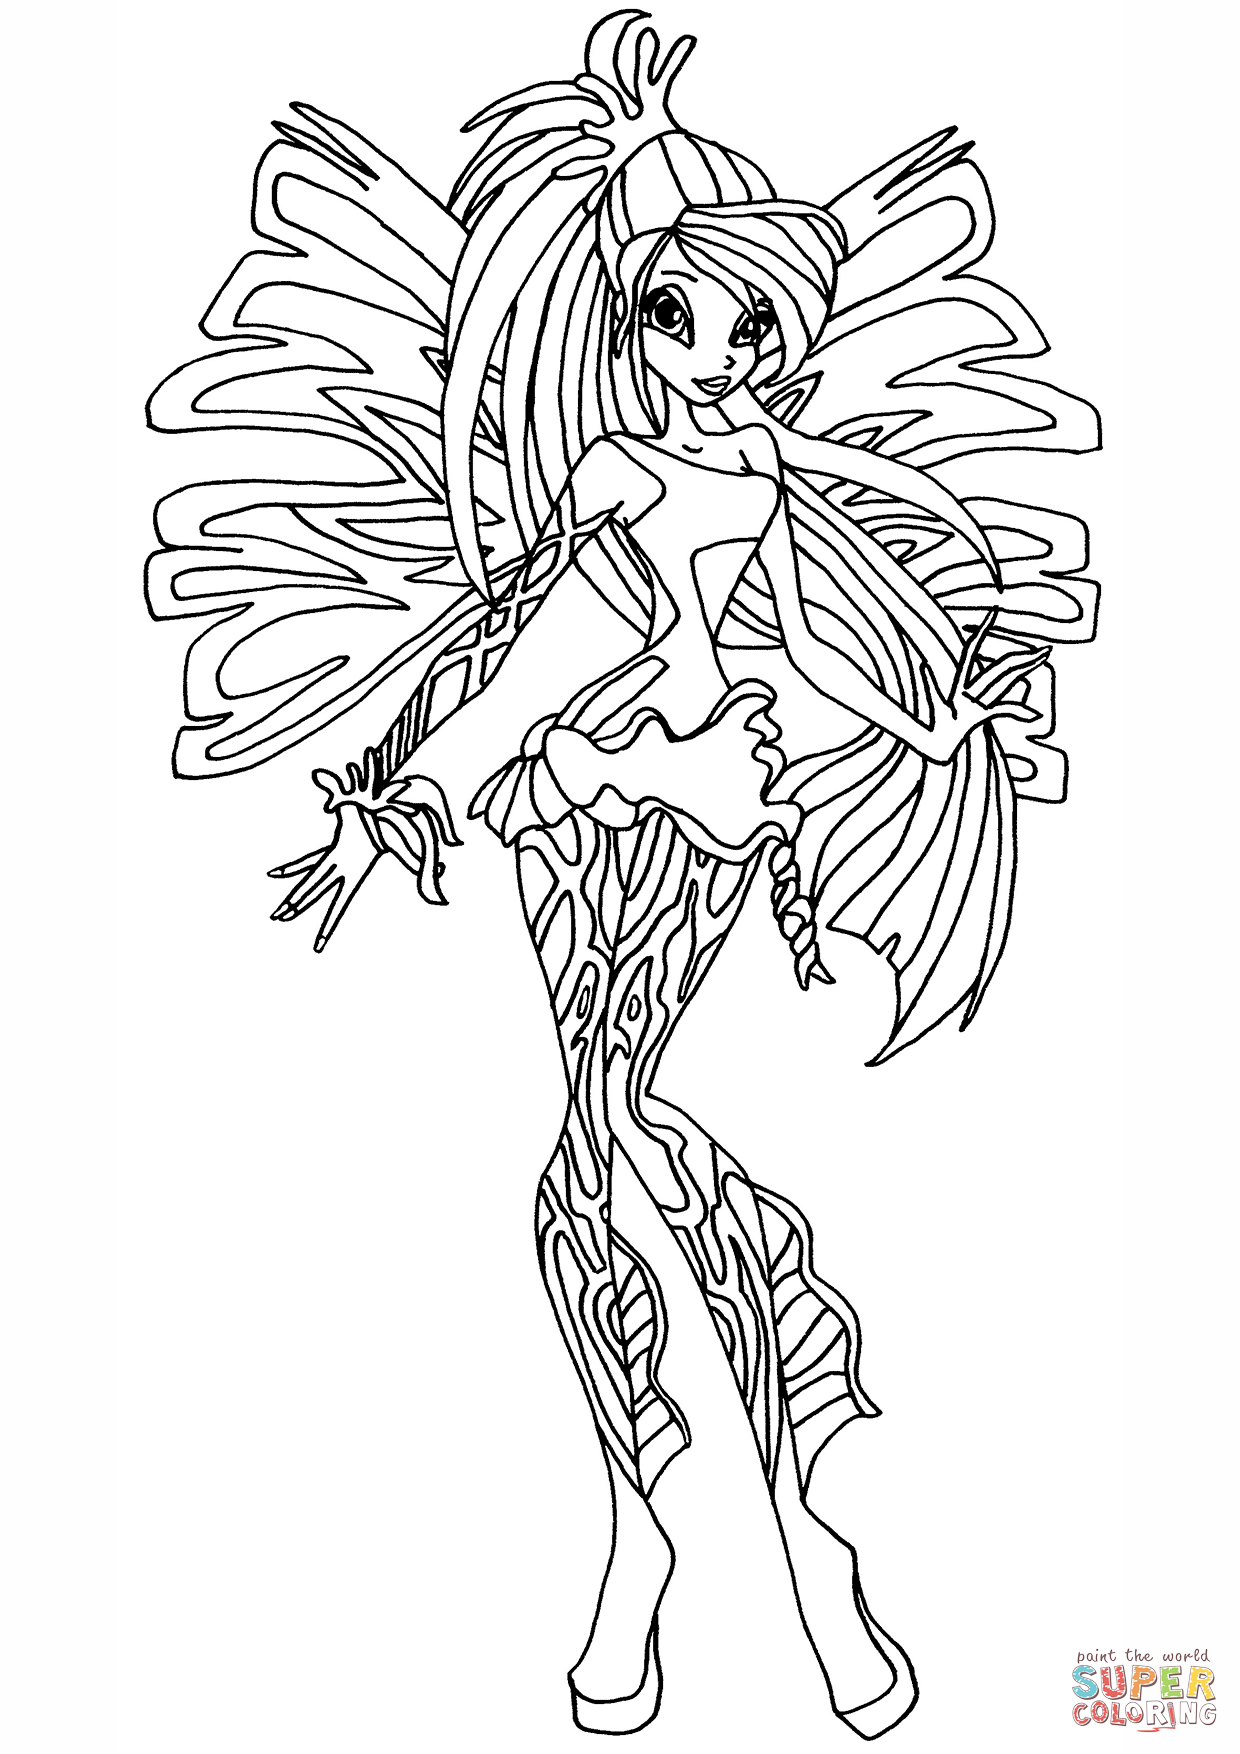 Winx Coloring Pages With Winx Club Sirenix Bloom Page Coloring For